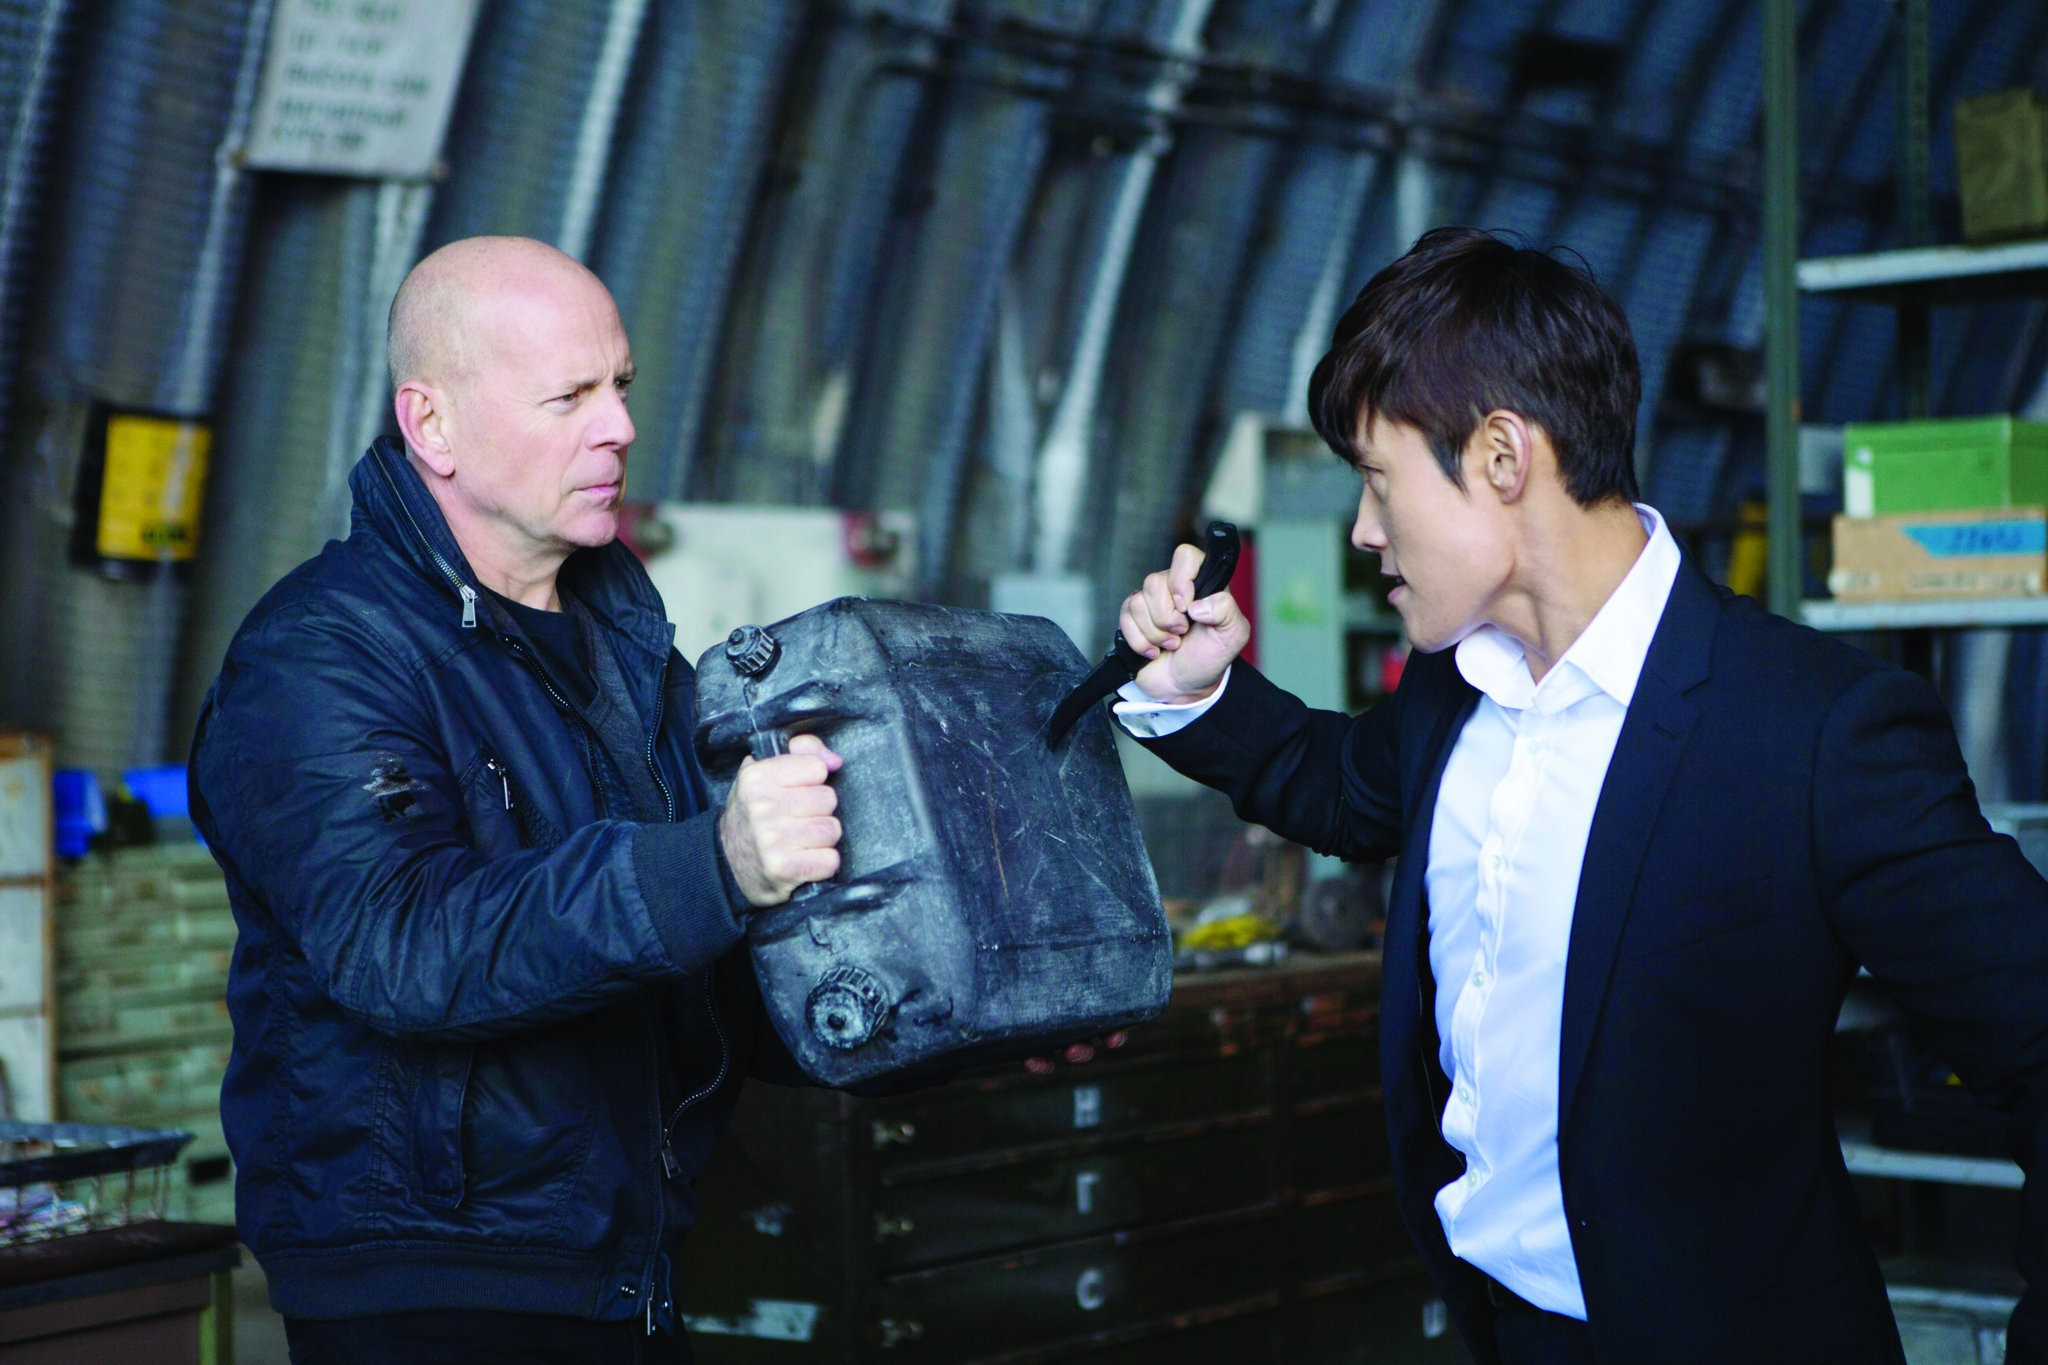 The Prince': Great movie biz buzz brings Bruce Willis and more stars